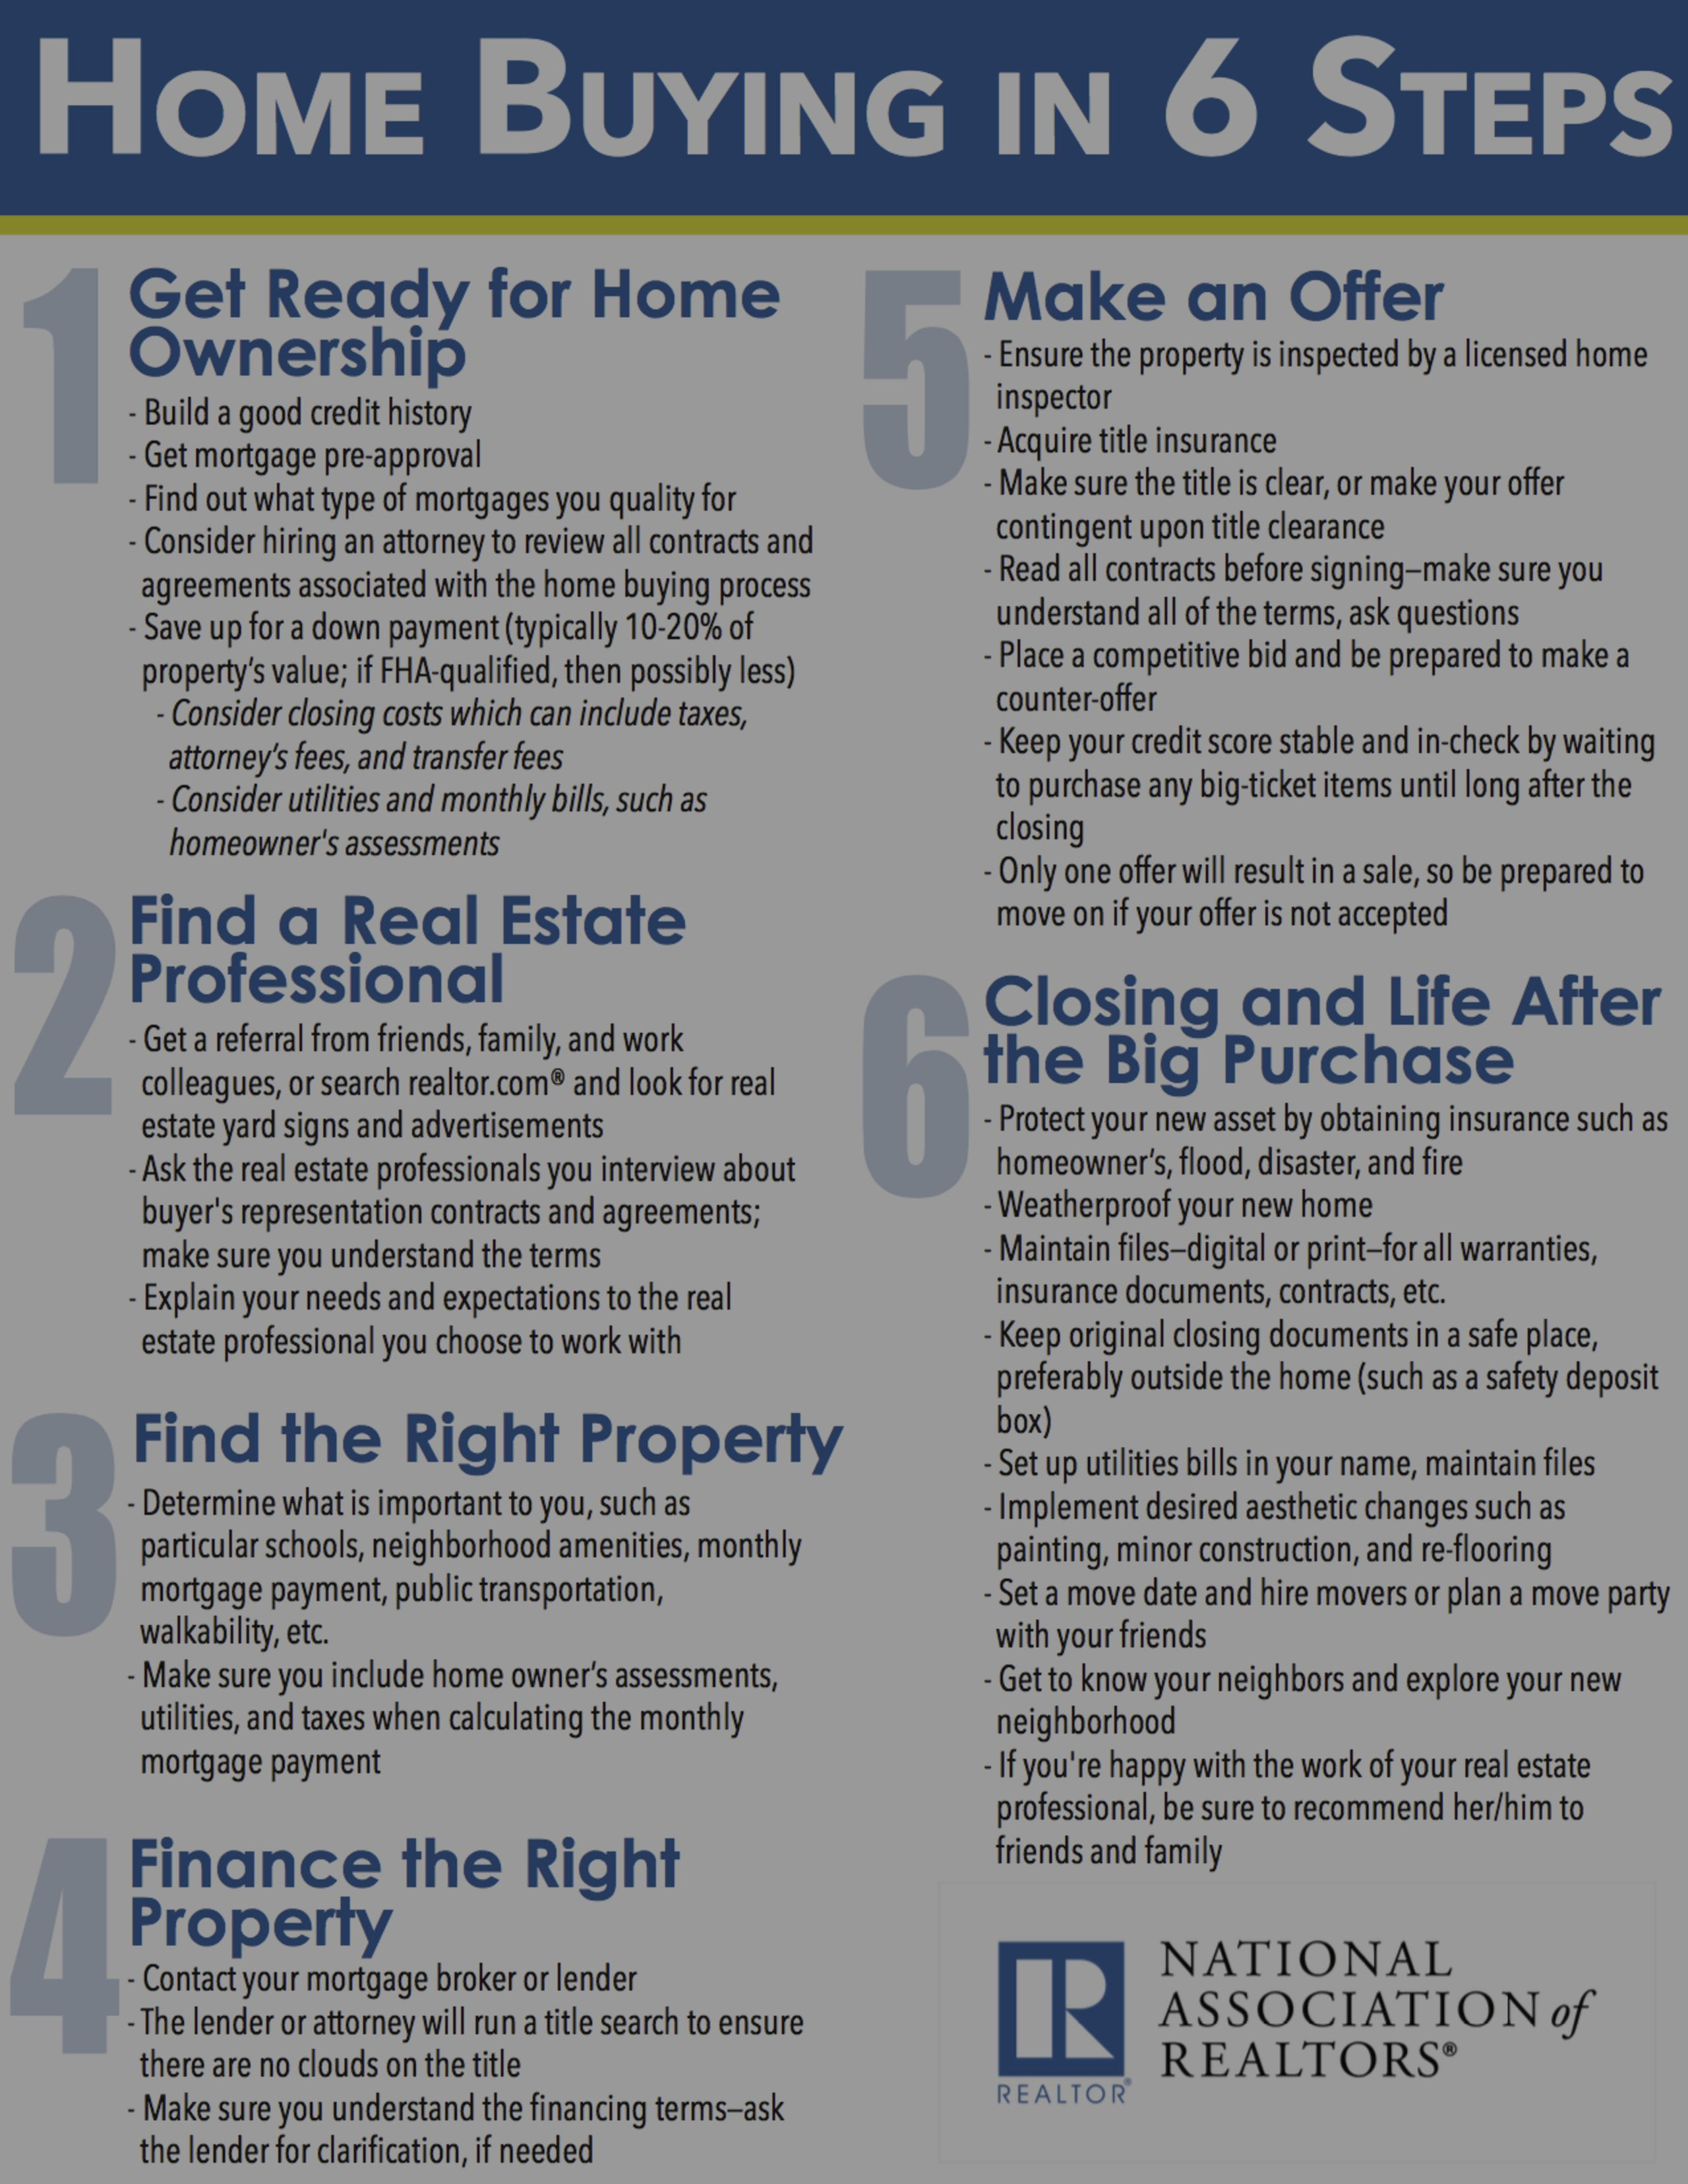 Home Buying in Six Steps